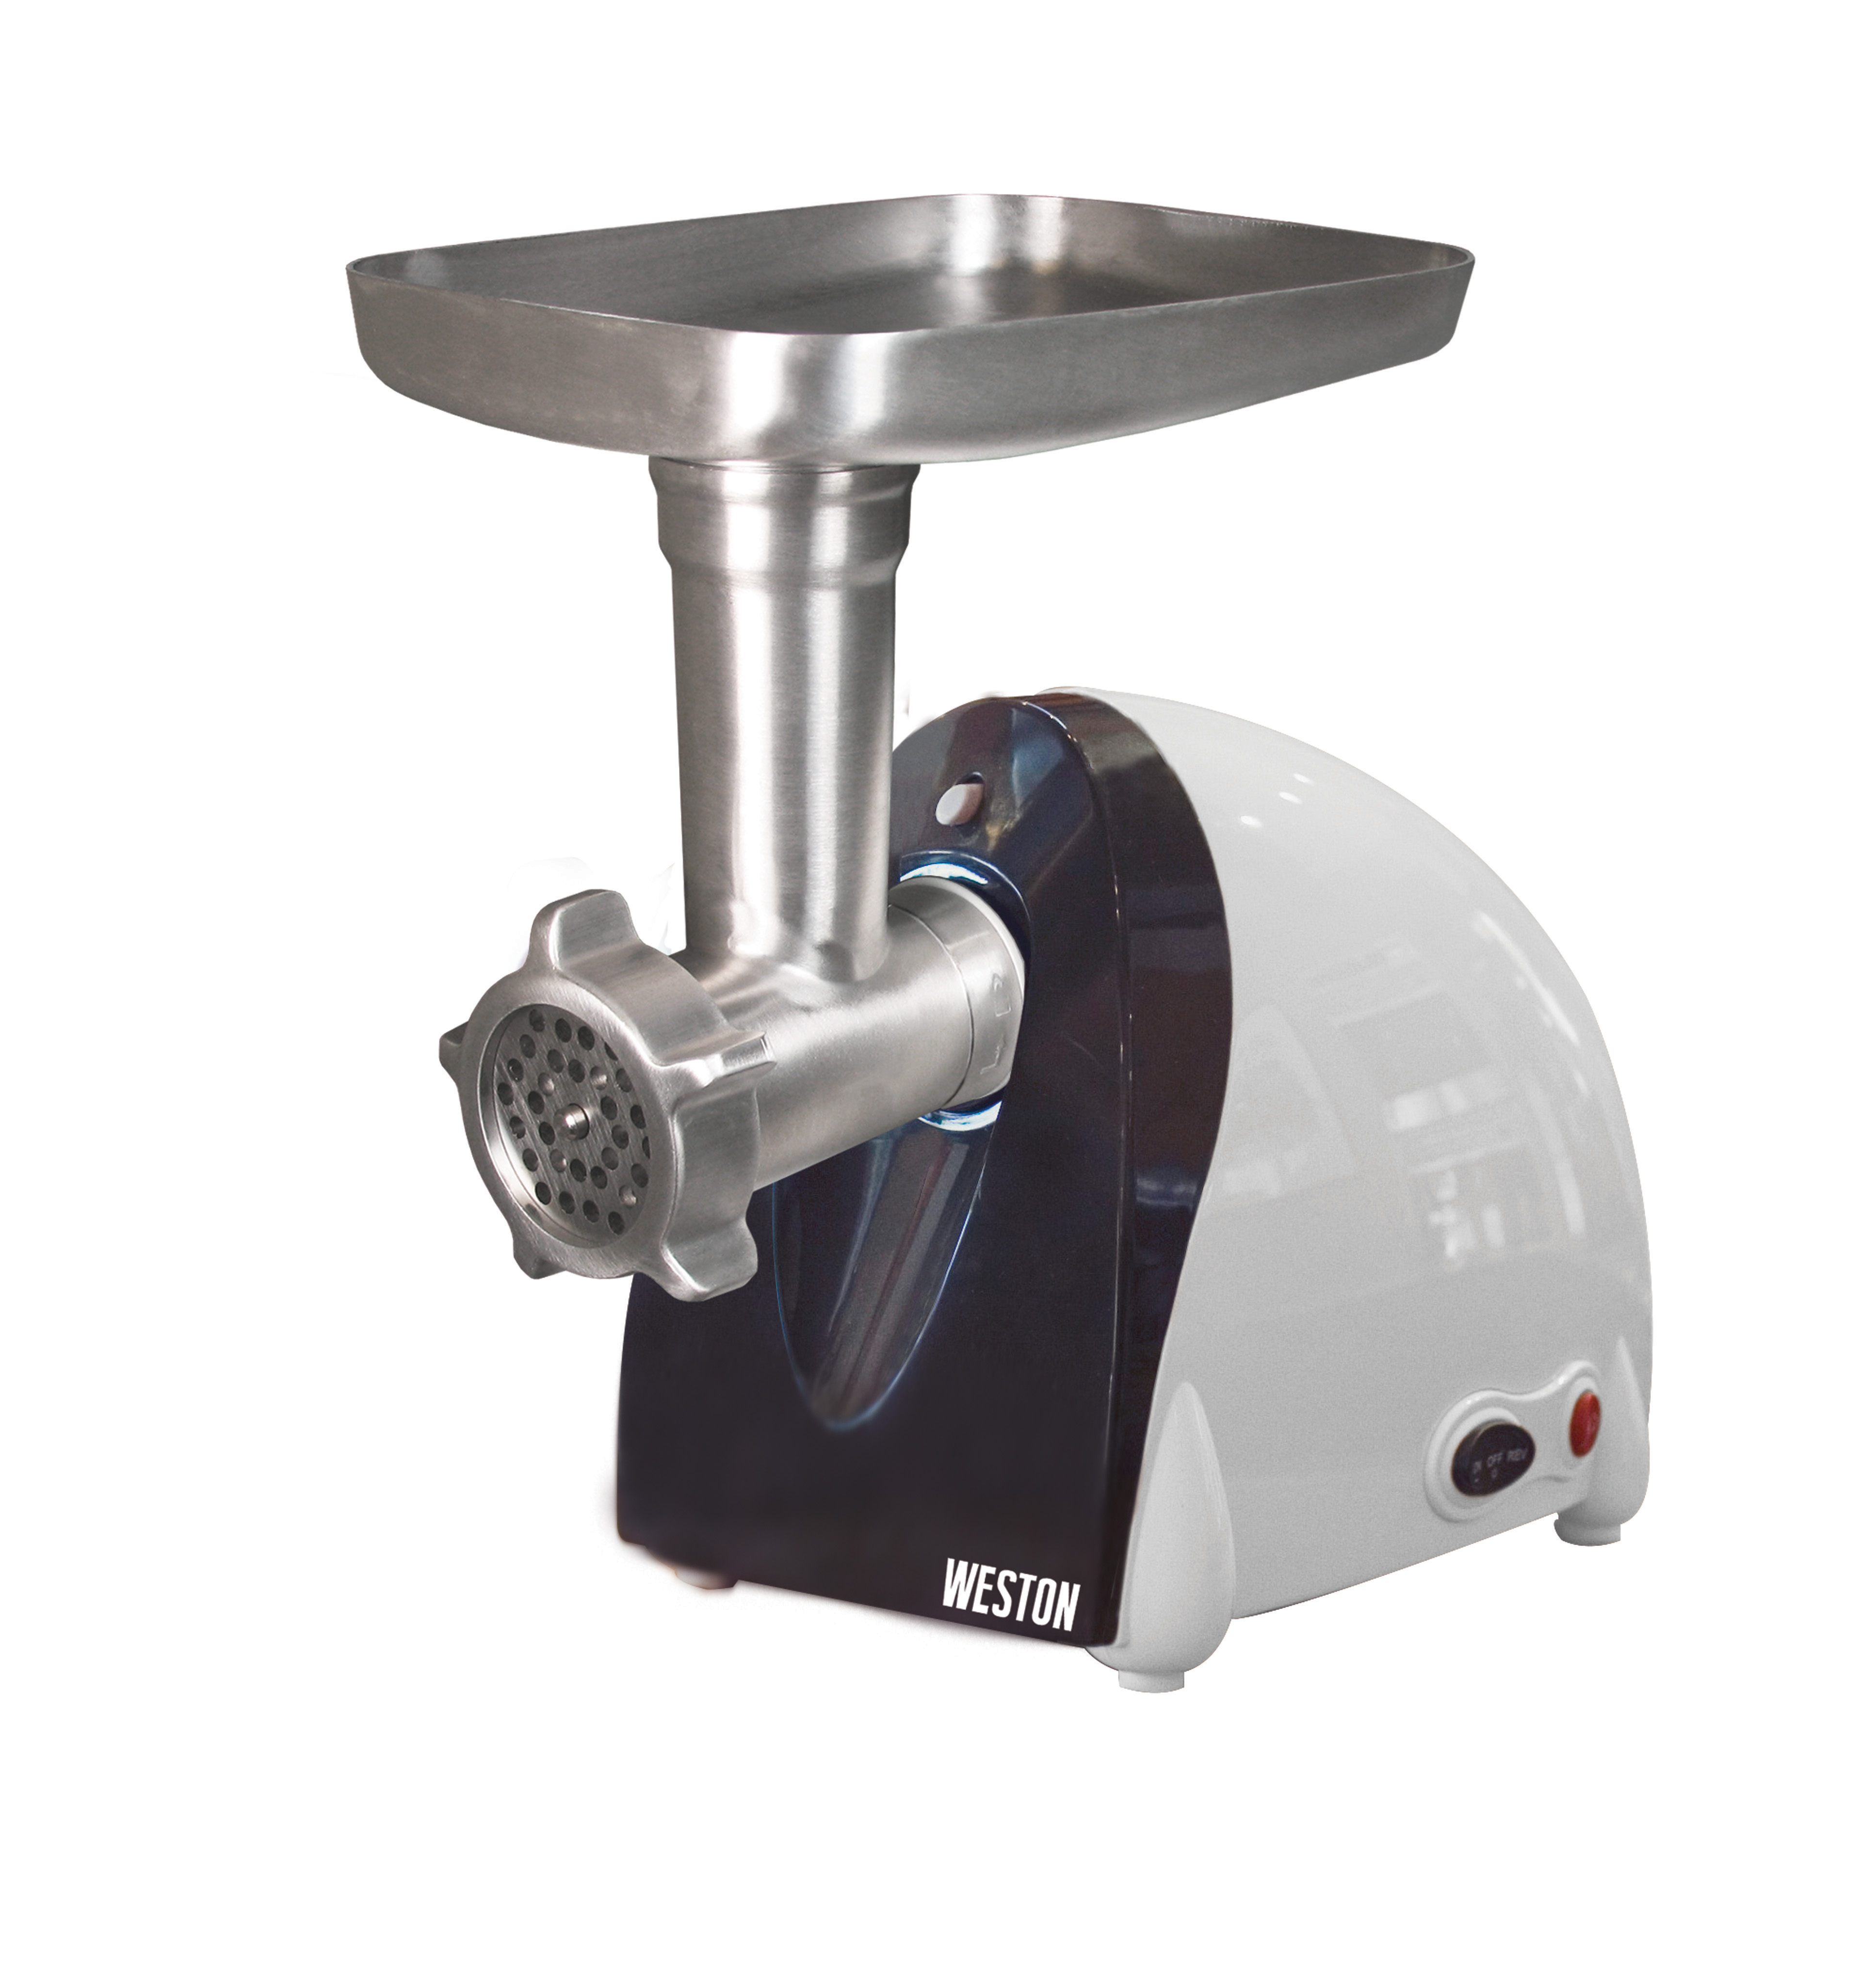 Weston Grinder, #5 Electric, 500 Watts